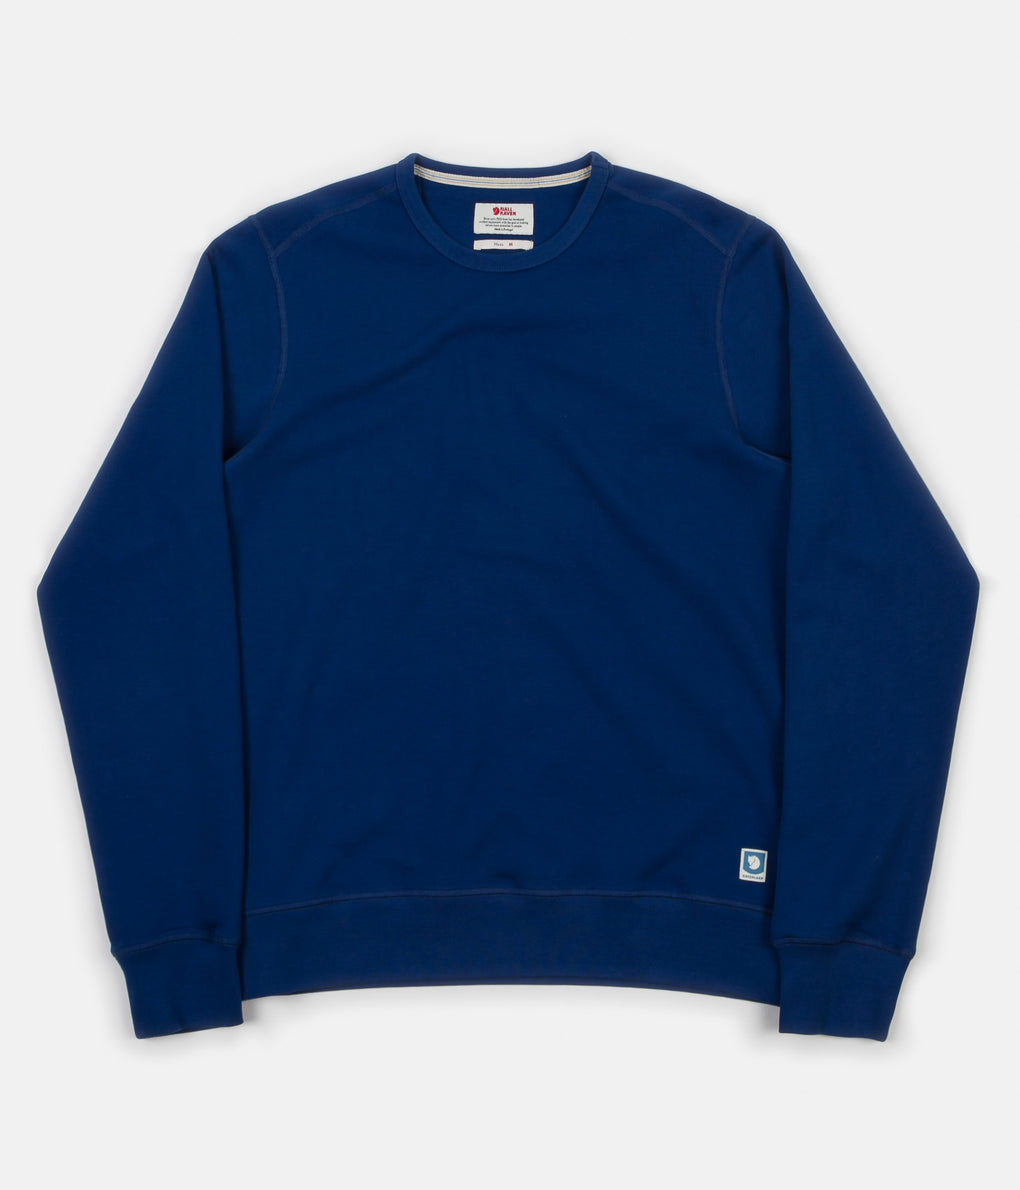 Fjällräven Greenland Sweatshirt - Deep Blue